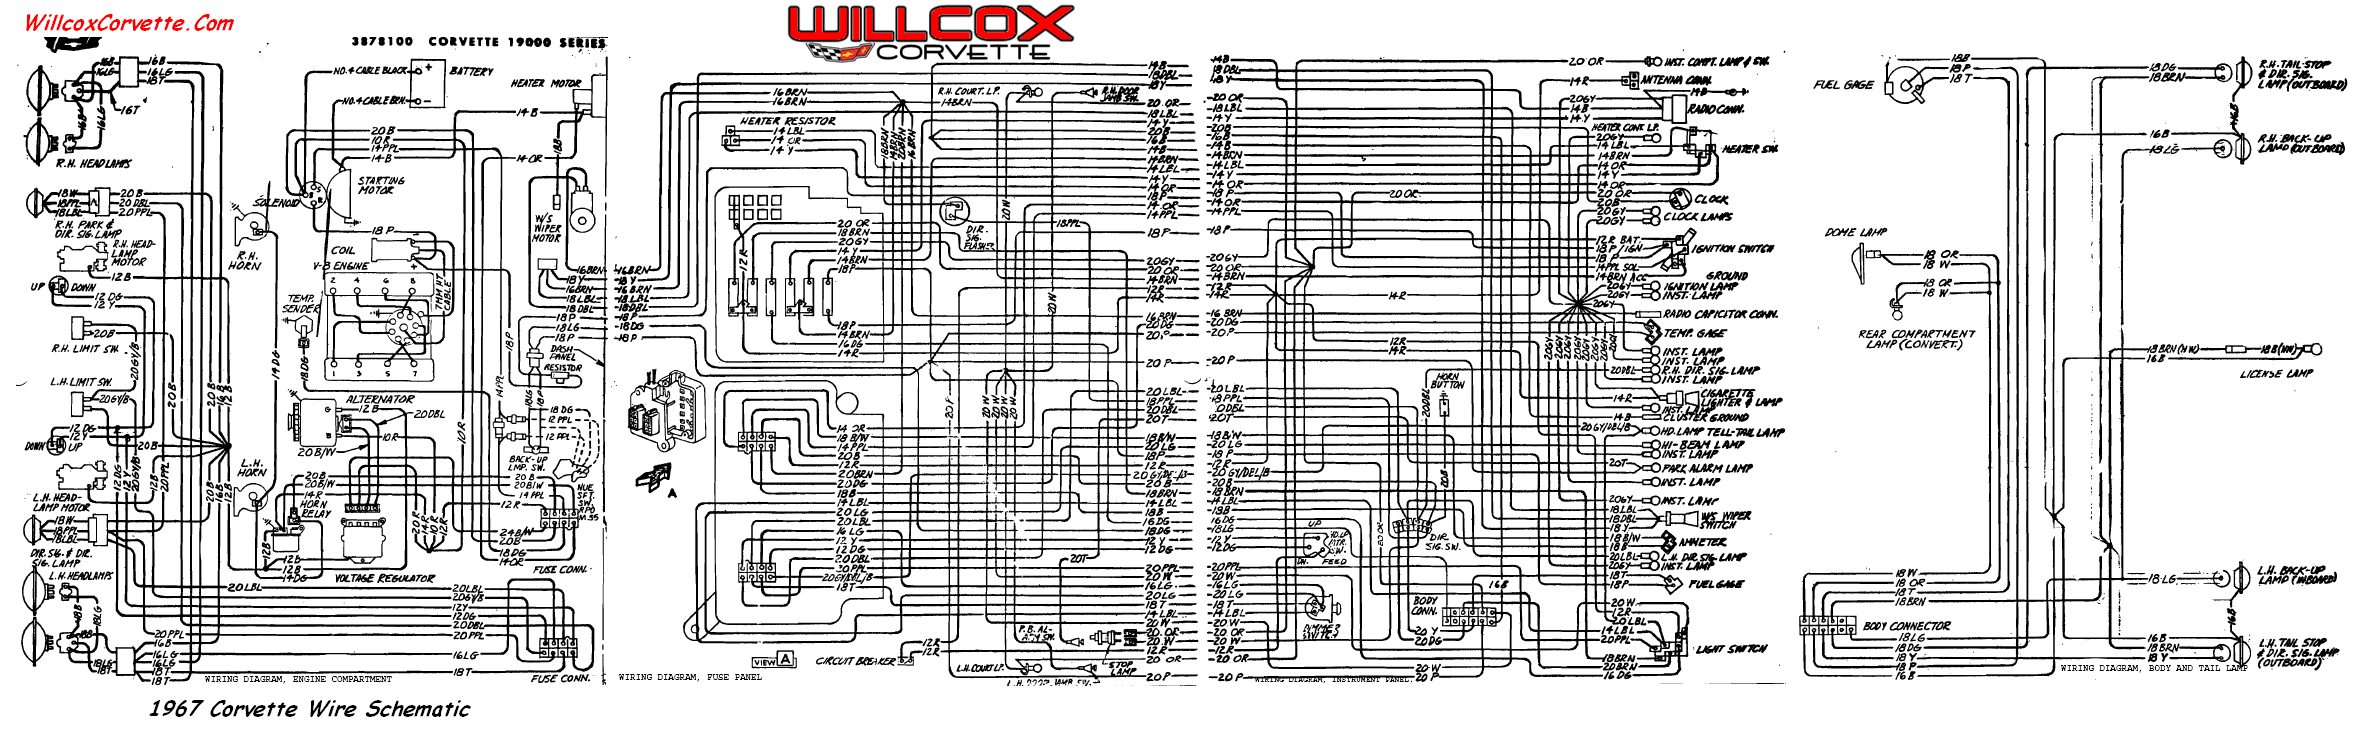 1969 Corvette Console Diagram Wiring Schematic Diagrams Schema 1976 Chevrolet Chevy Data C3